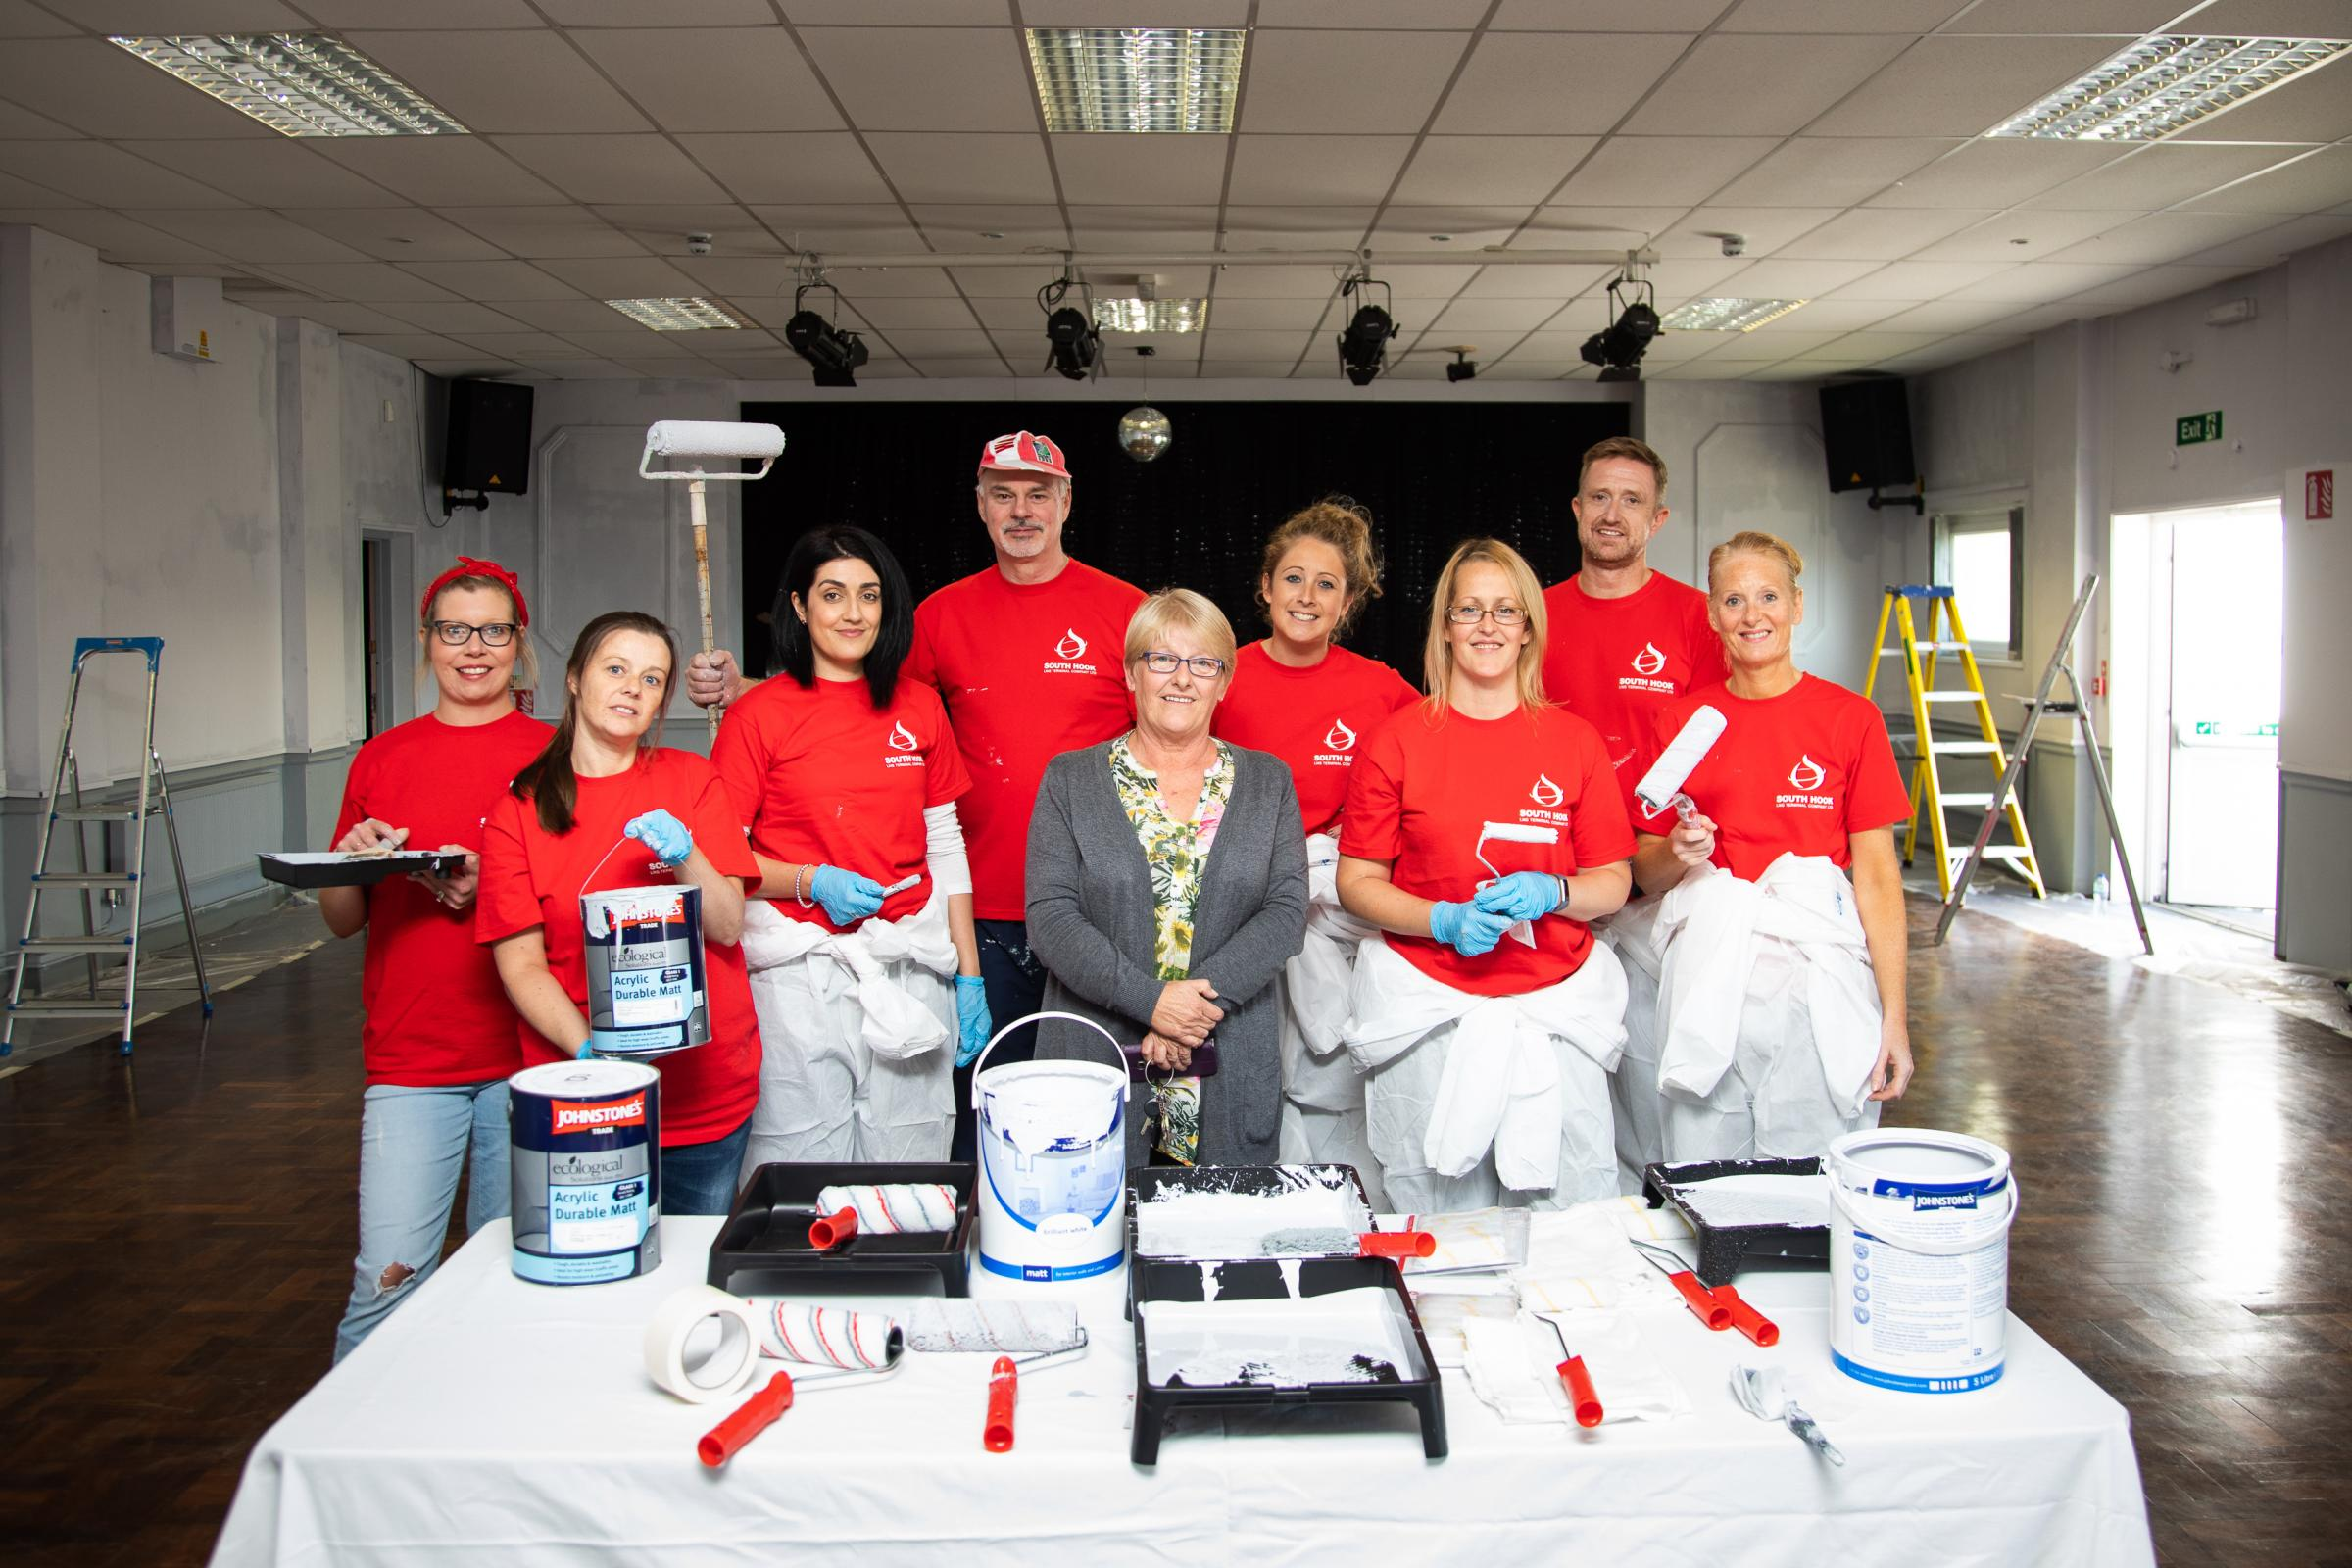 A team of volunteer painter and decorators from South Hook LNG, pictured with Teresa Evans, Trustee of the Centre.